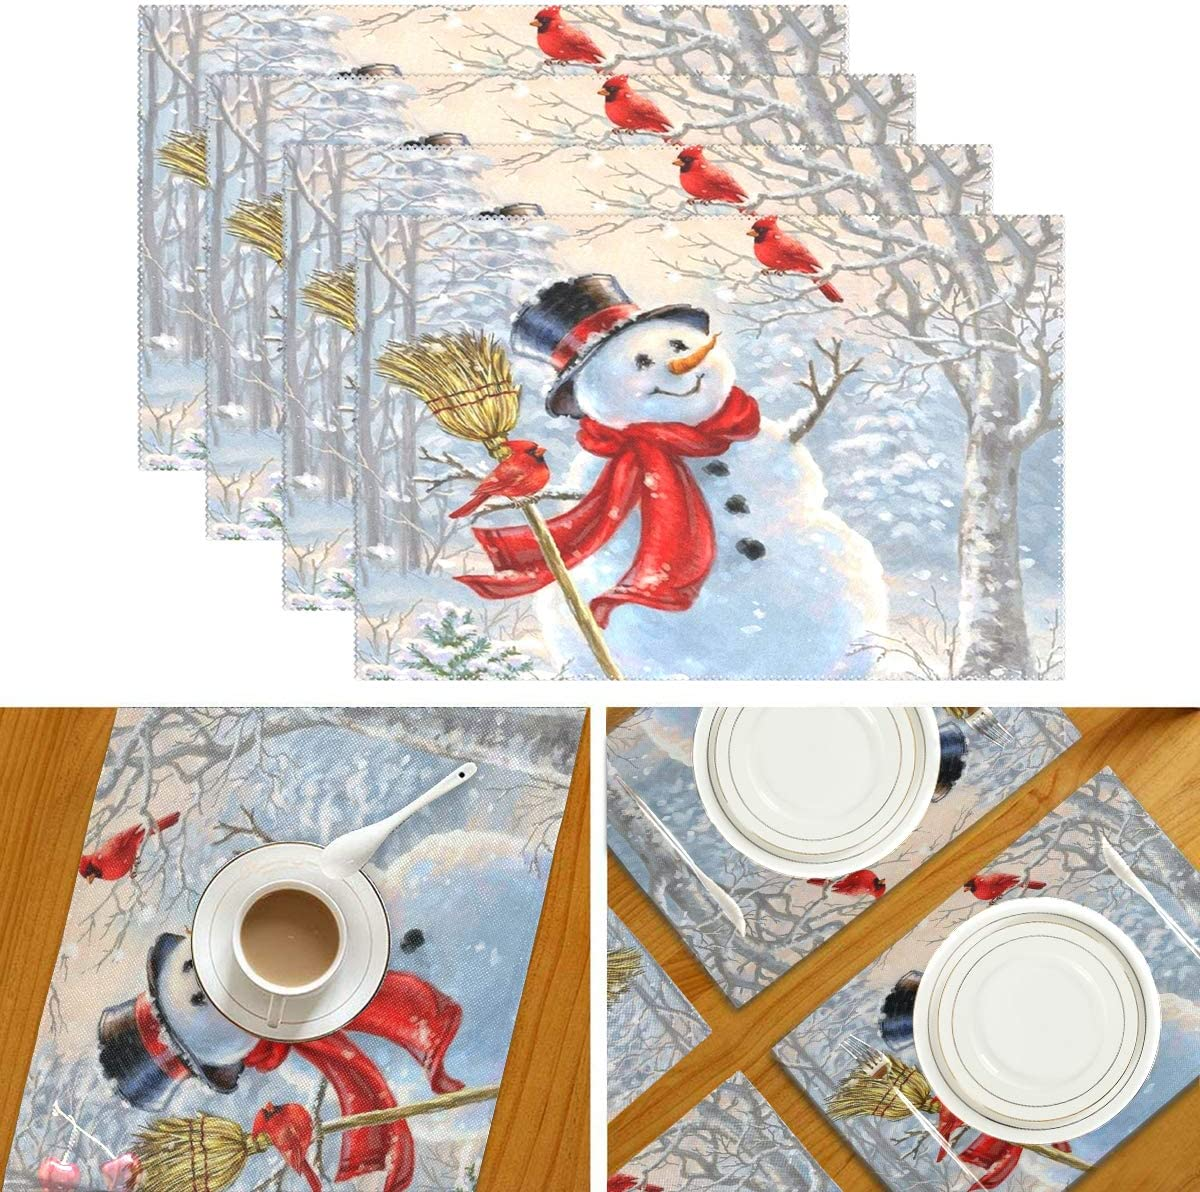 Wamika Winter Cardinals Snowman Placemats Christmas Snow Forest Table Mats Non-Slip Washable Heat Resistant Place Mats for Kitchen Dining Decor Tray Mat 12